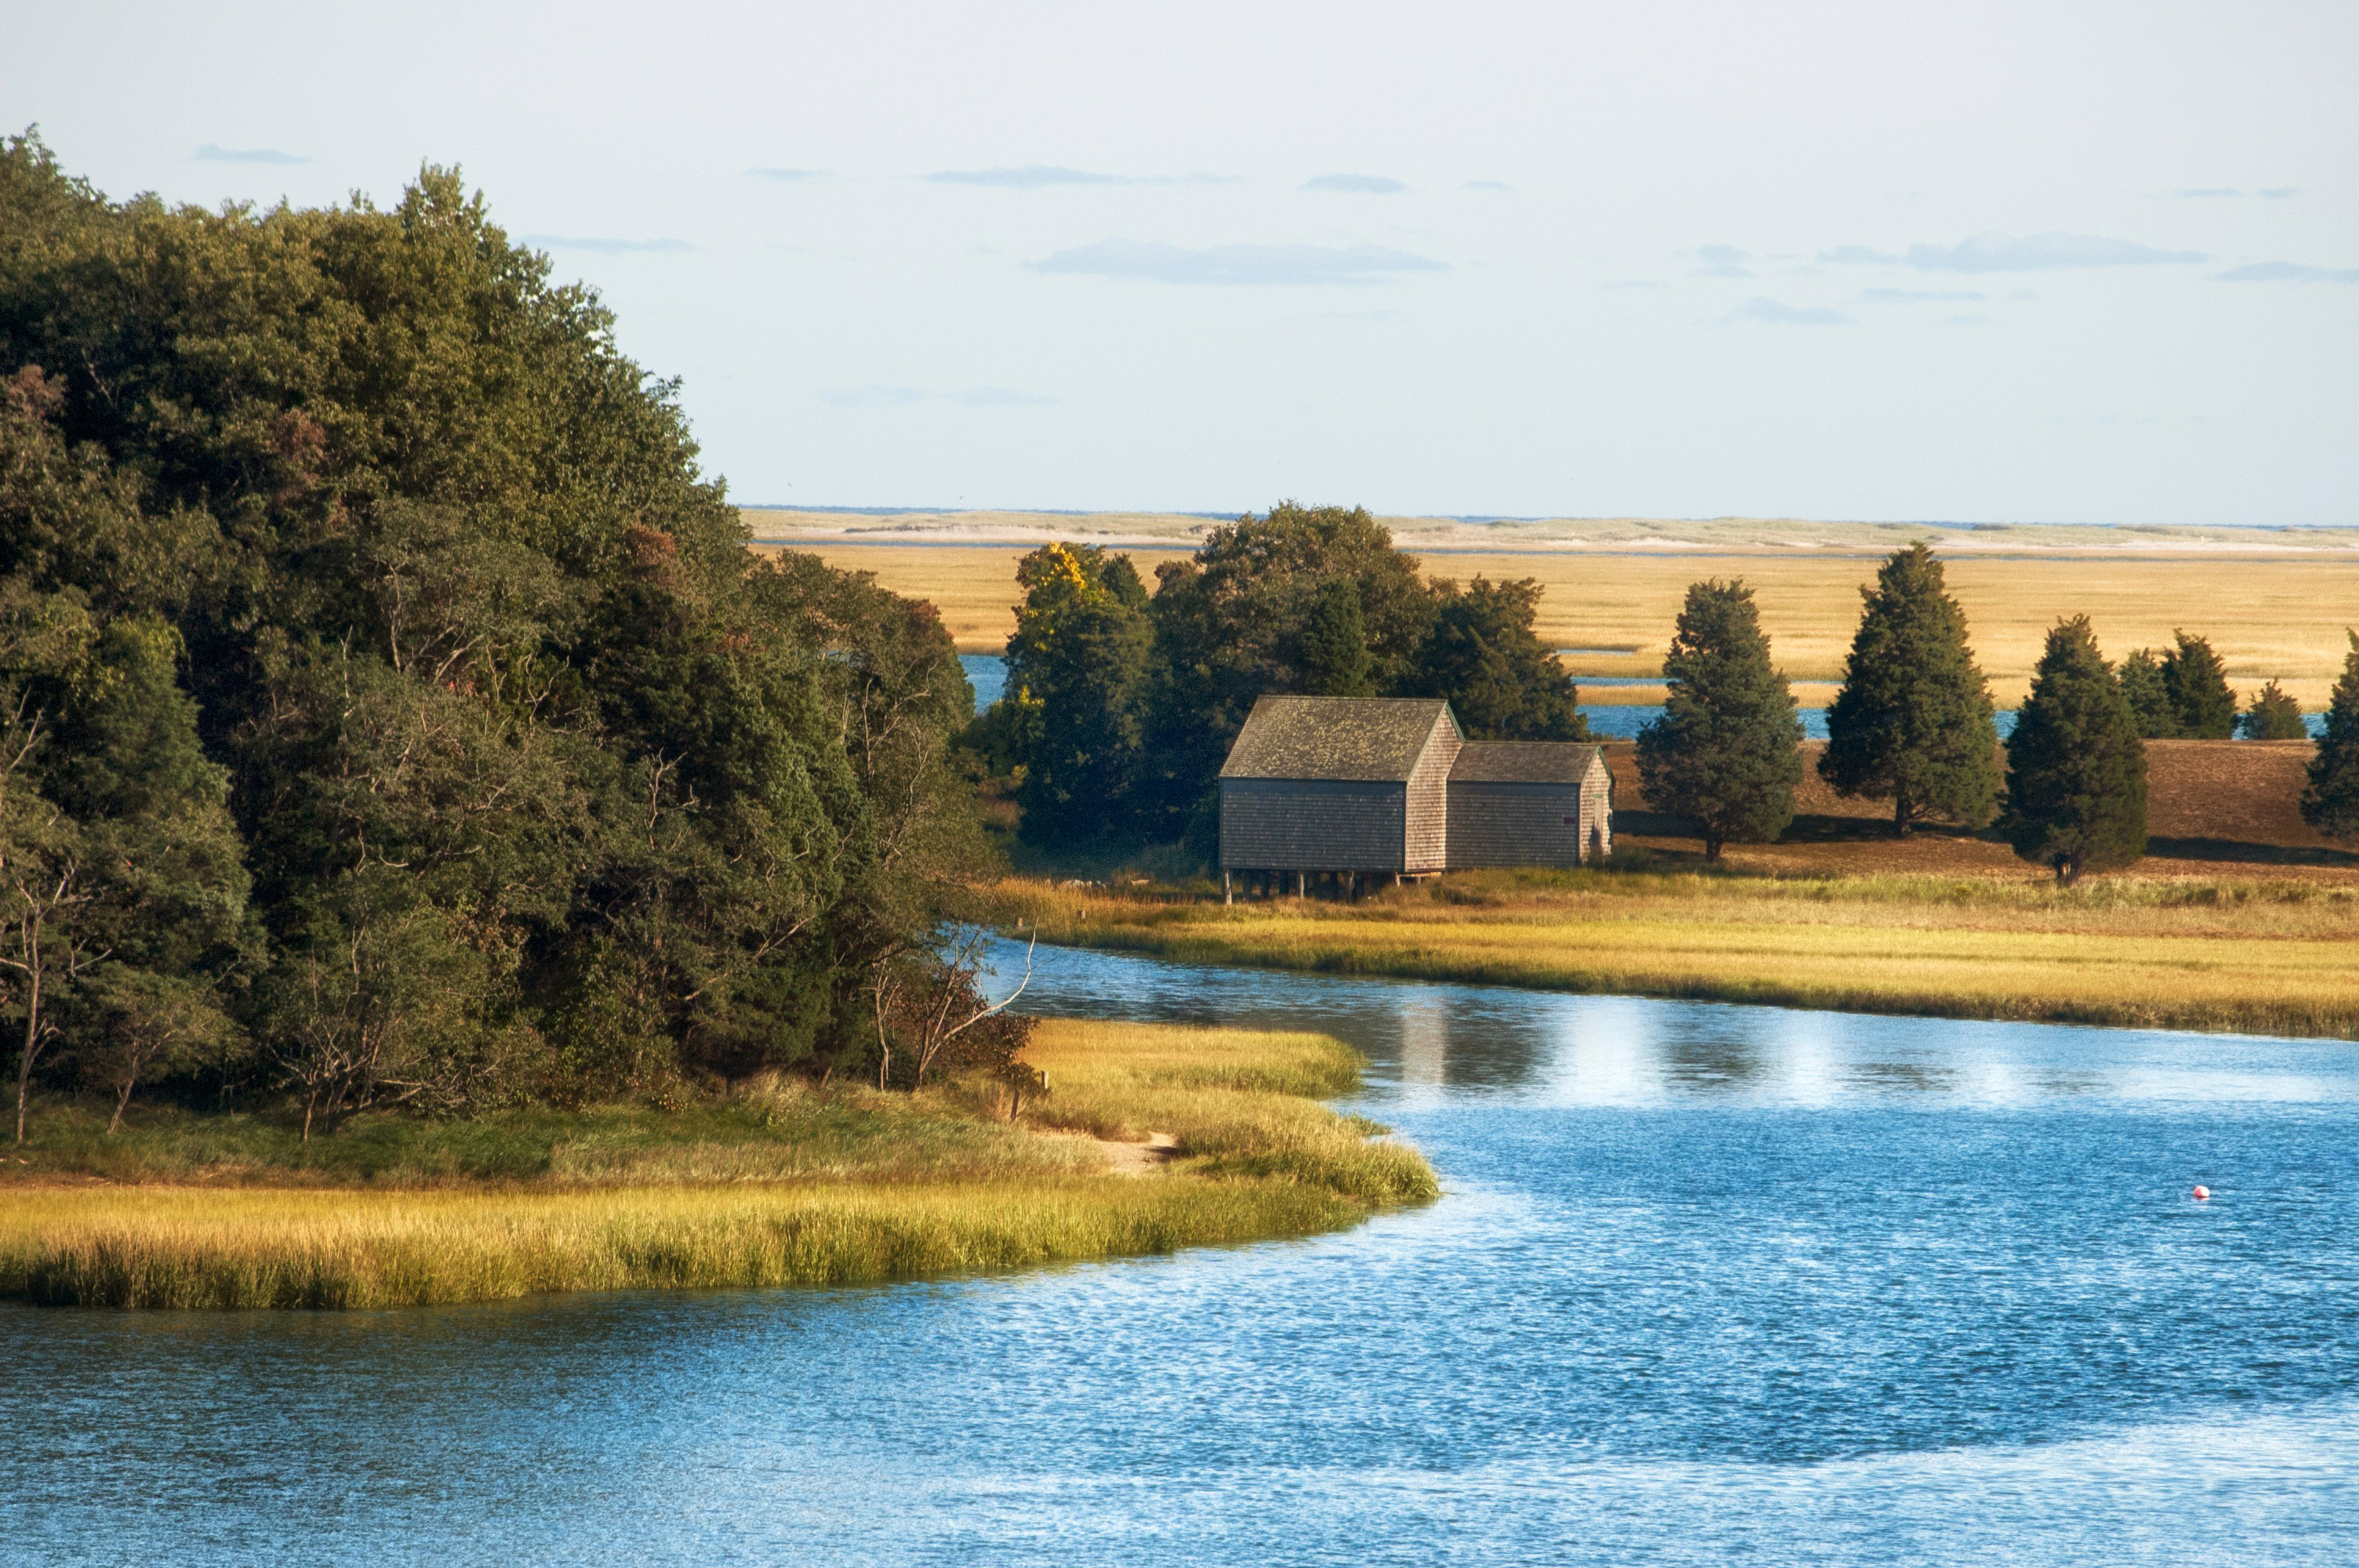 River Landscape And House At Cape Cod Massachusetts Image